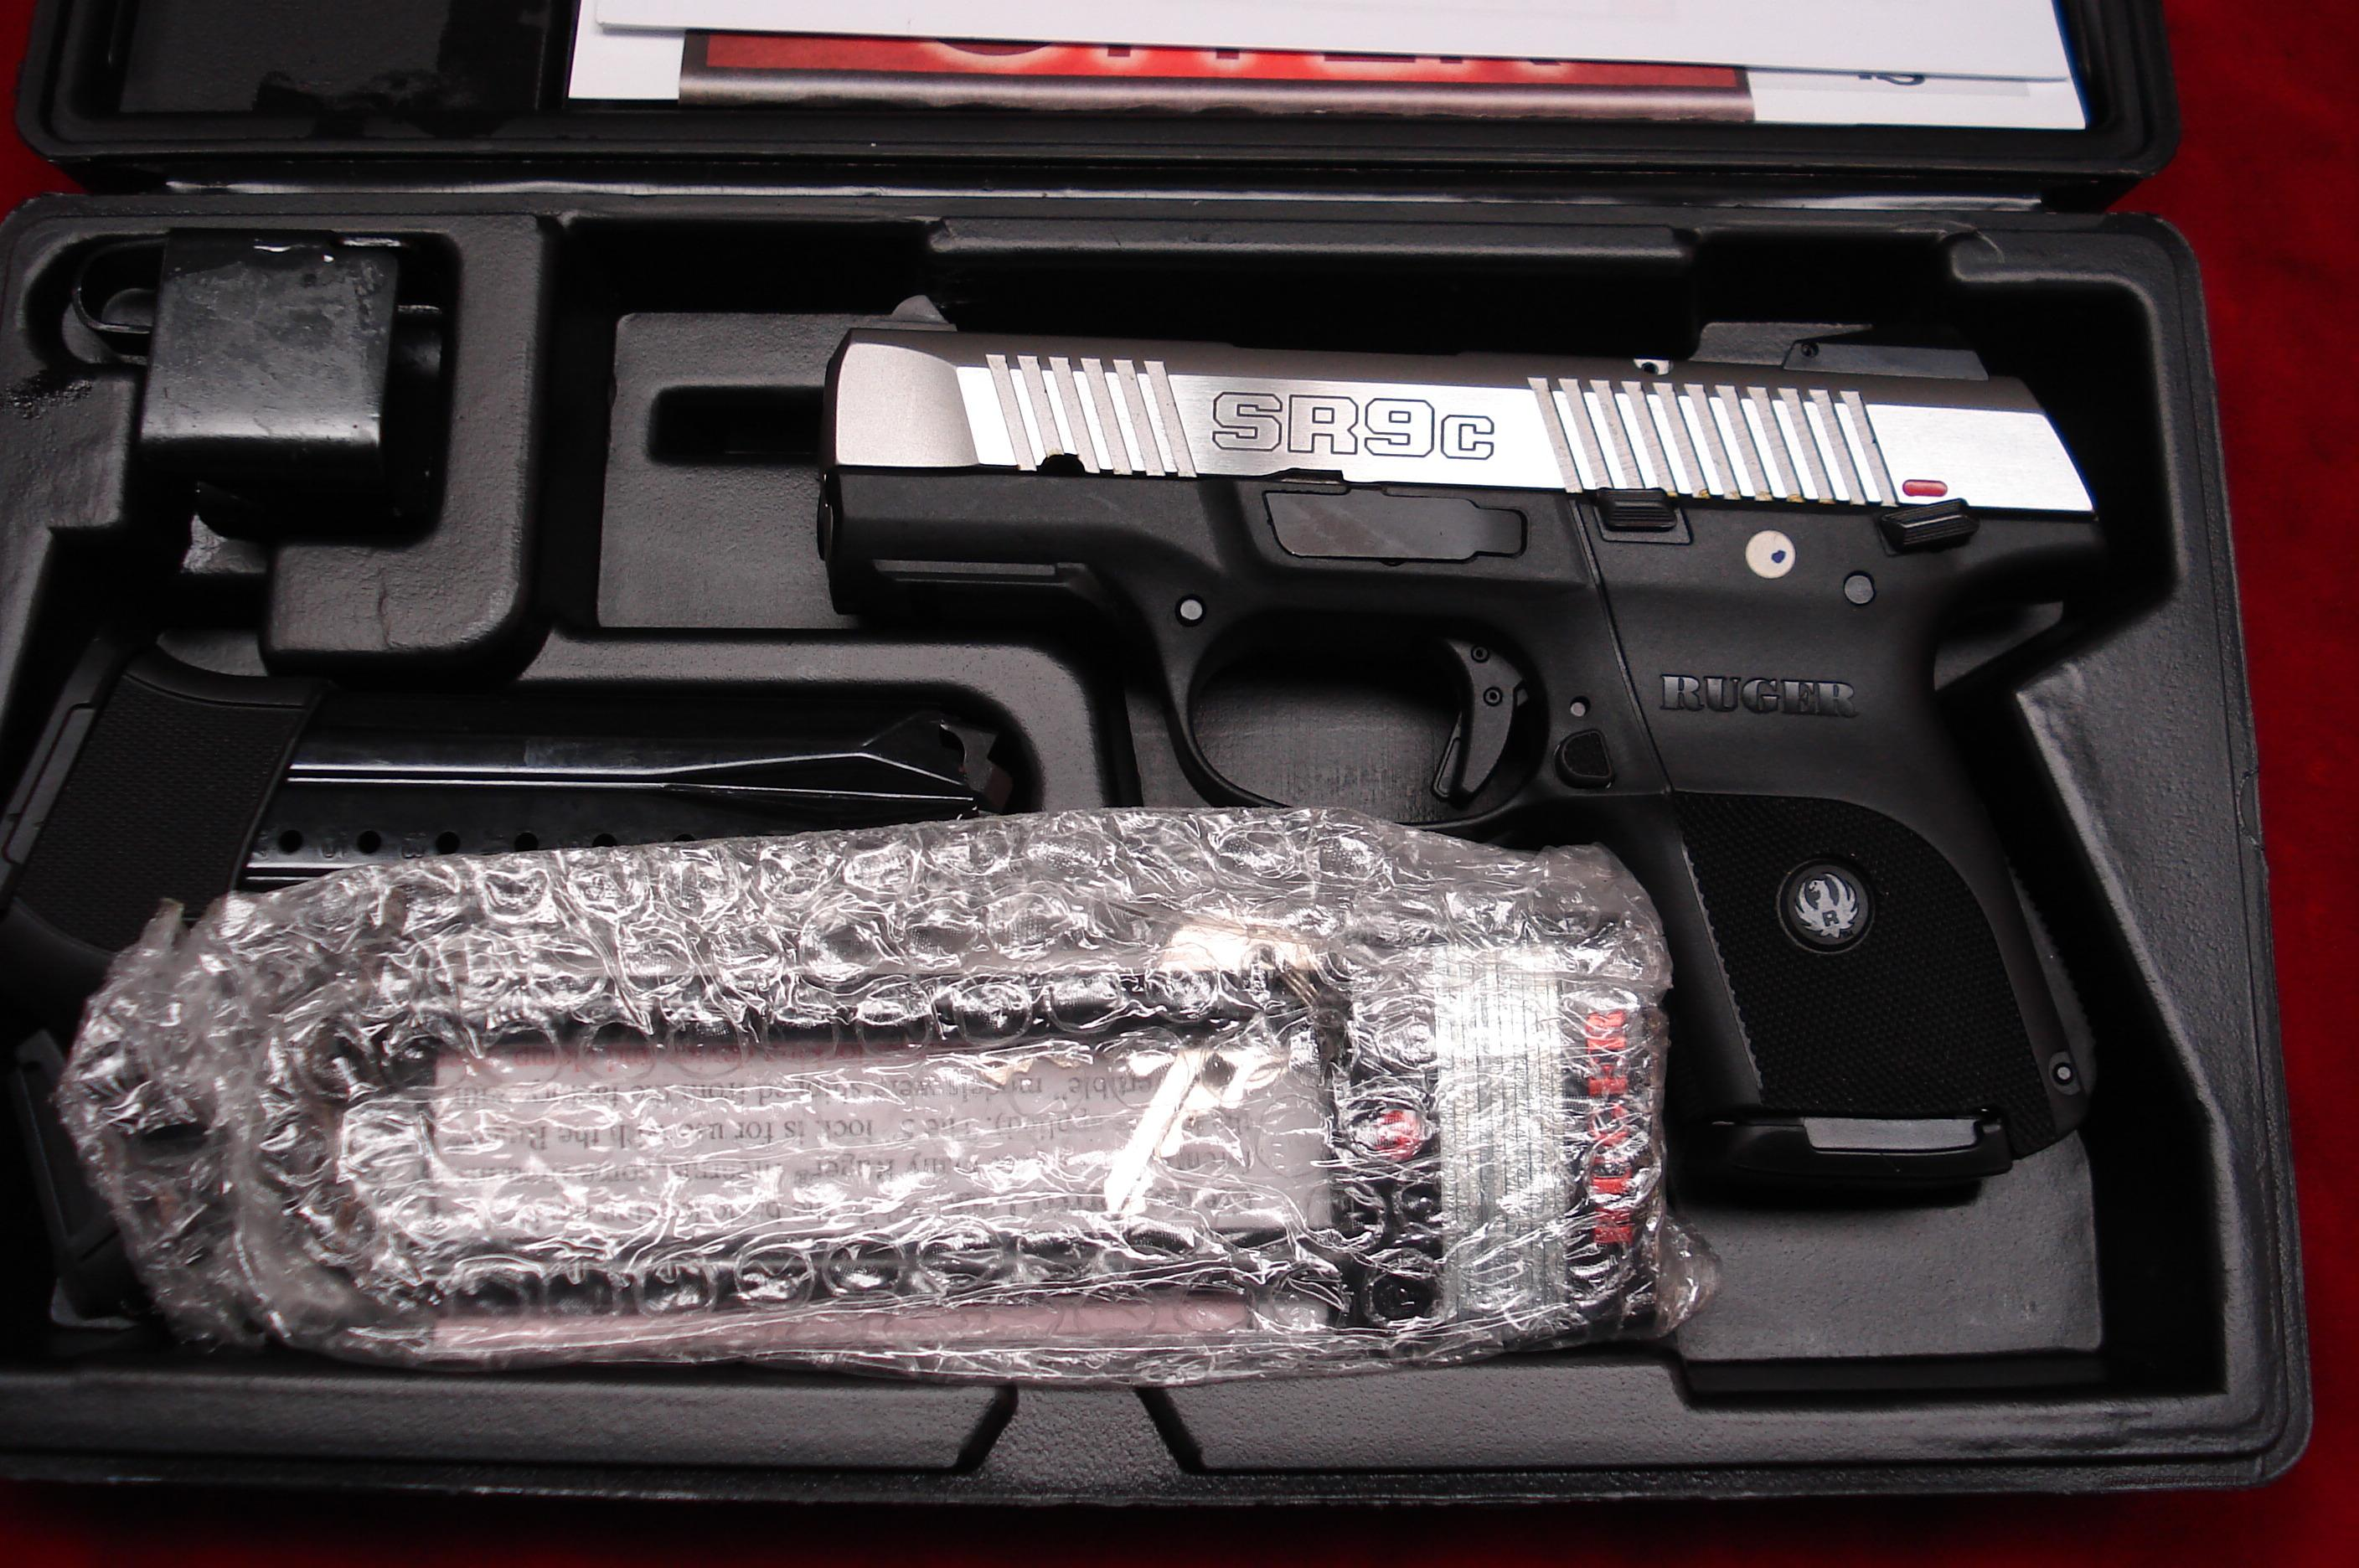 RUGER  SR9C (COMPACT) STAINLESS NEW (IN STOCK)! (KSR9C)   Guns > Pistols > Ruger Semi-Auto Pistols > SR9 & SR40